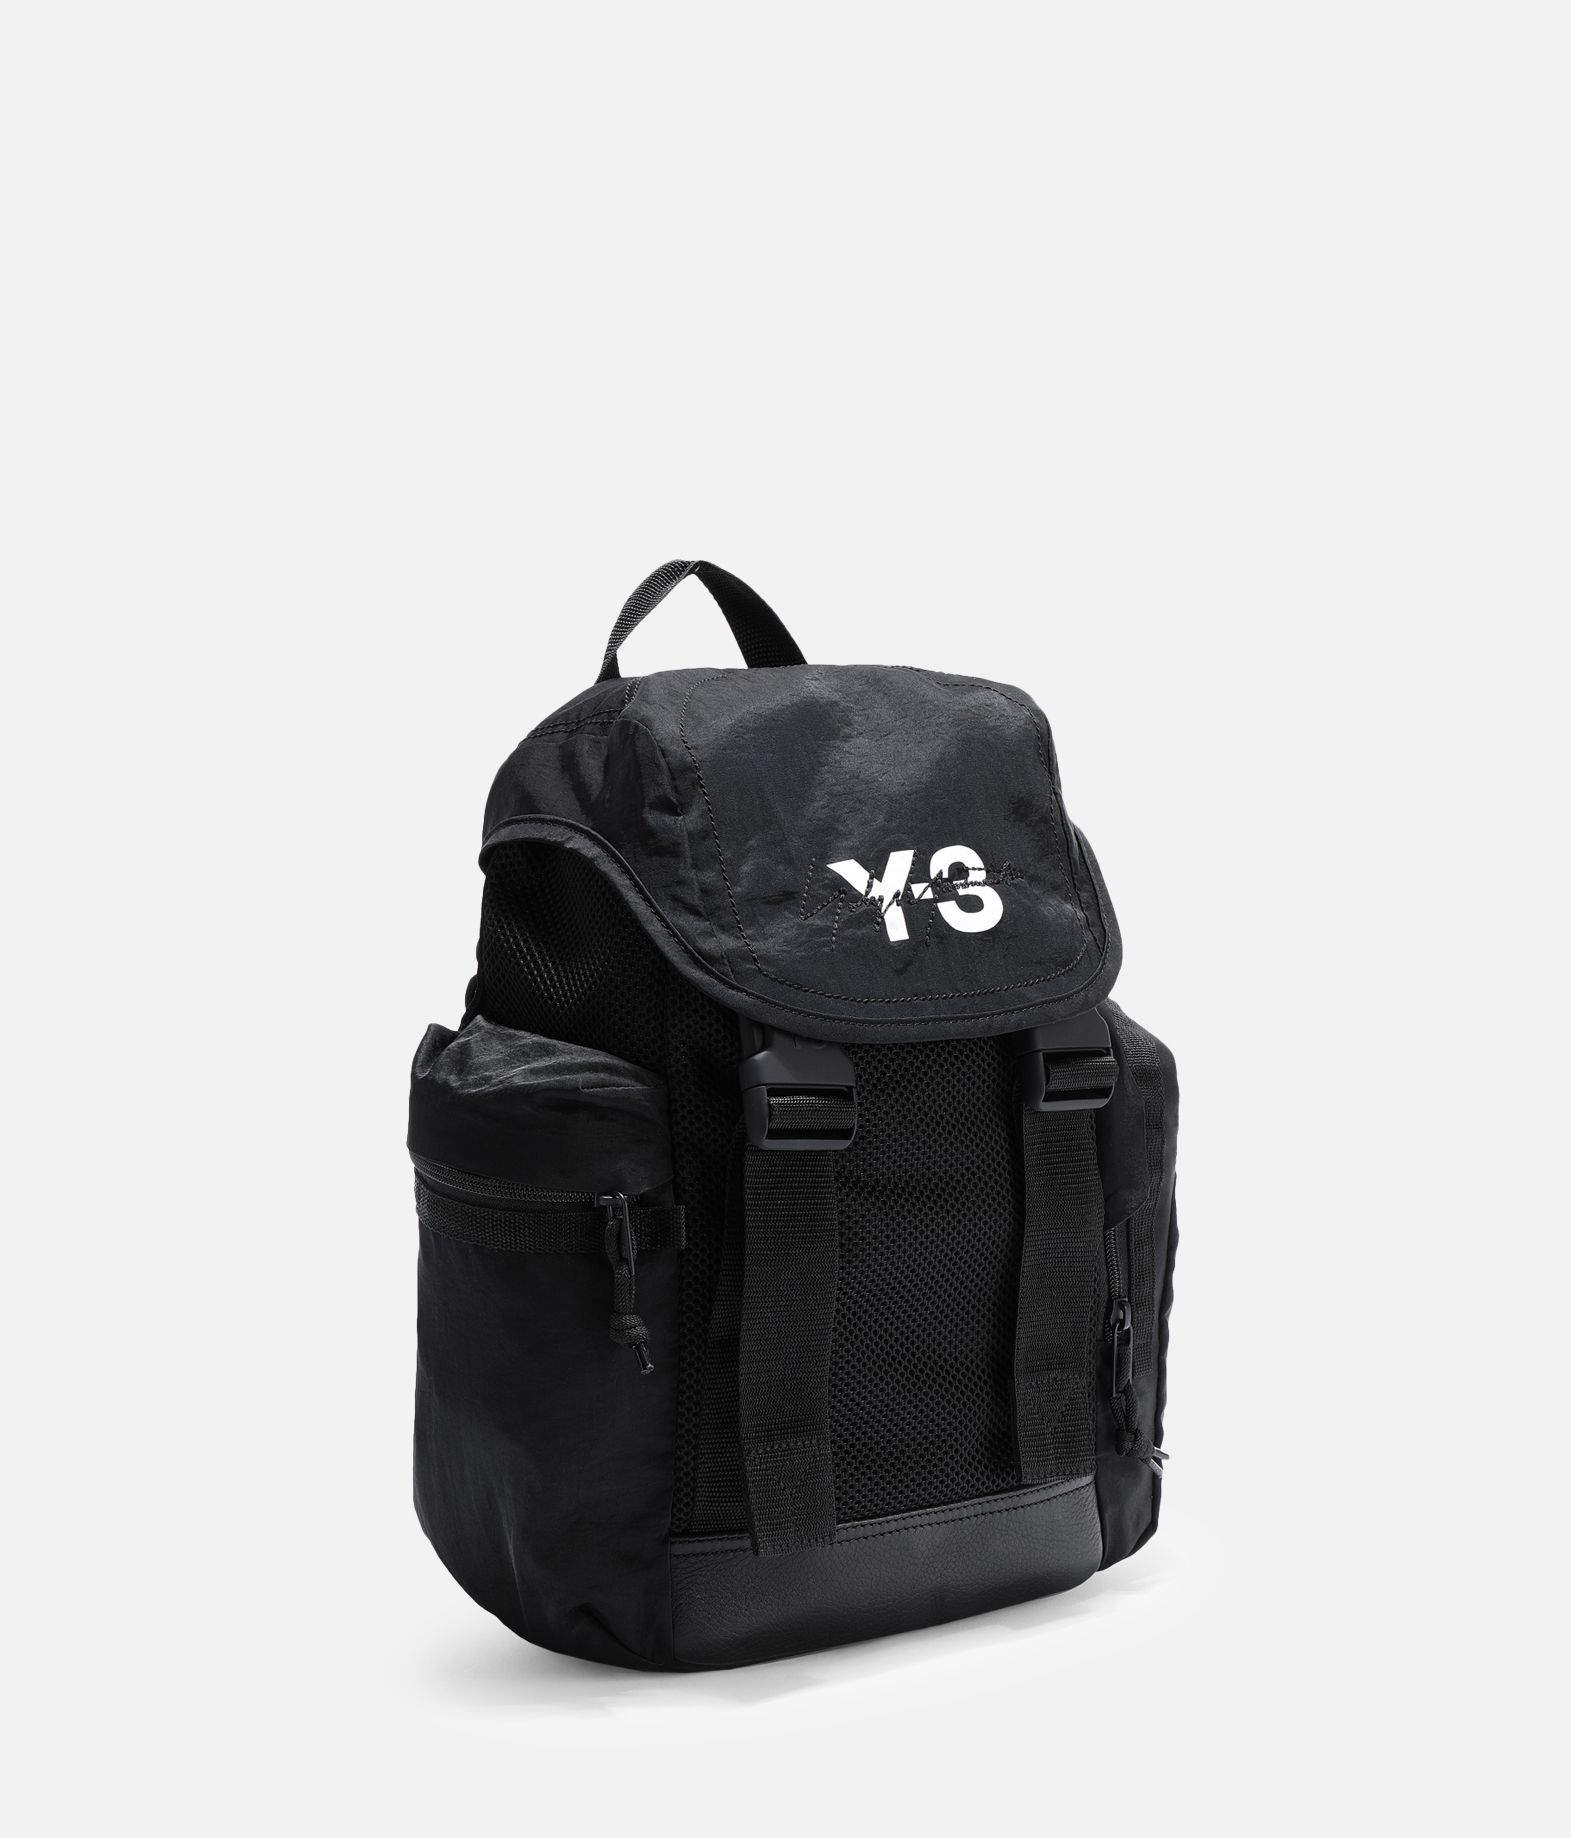 Y-3 Y-3 XS Mobility Bag Backpack E r